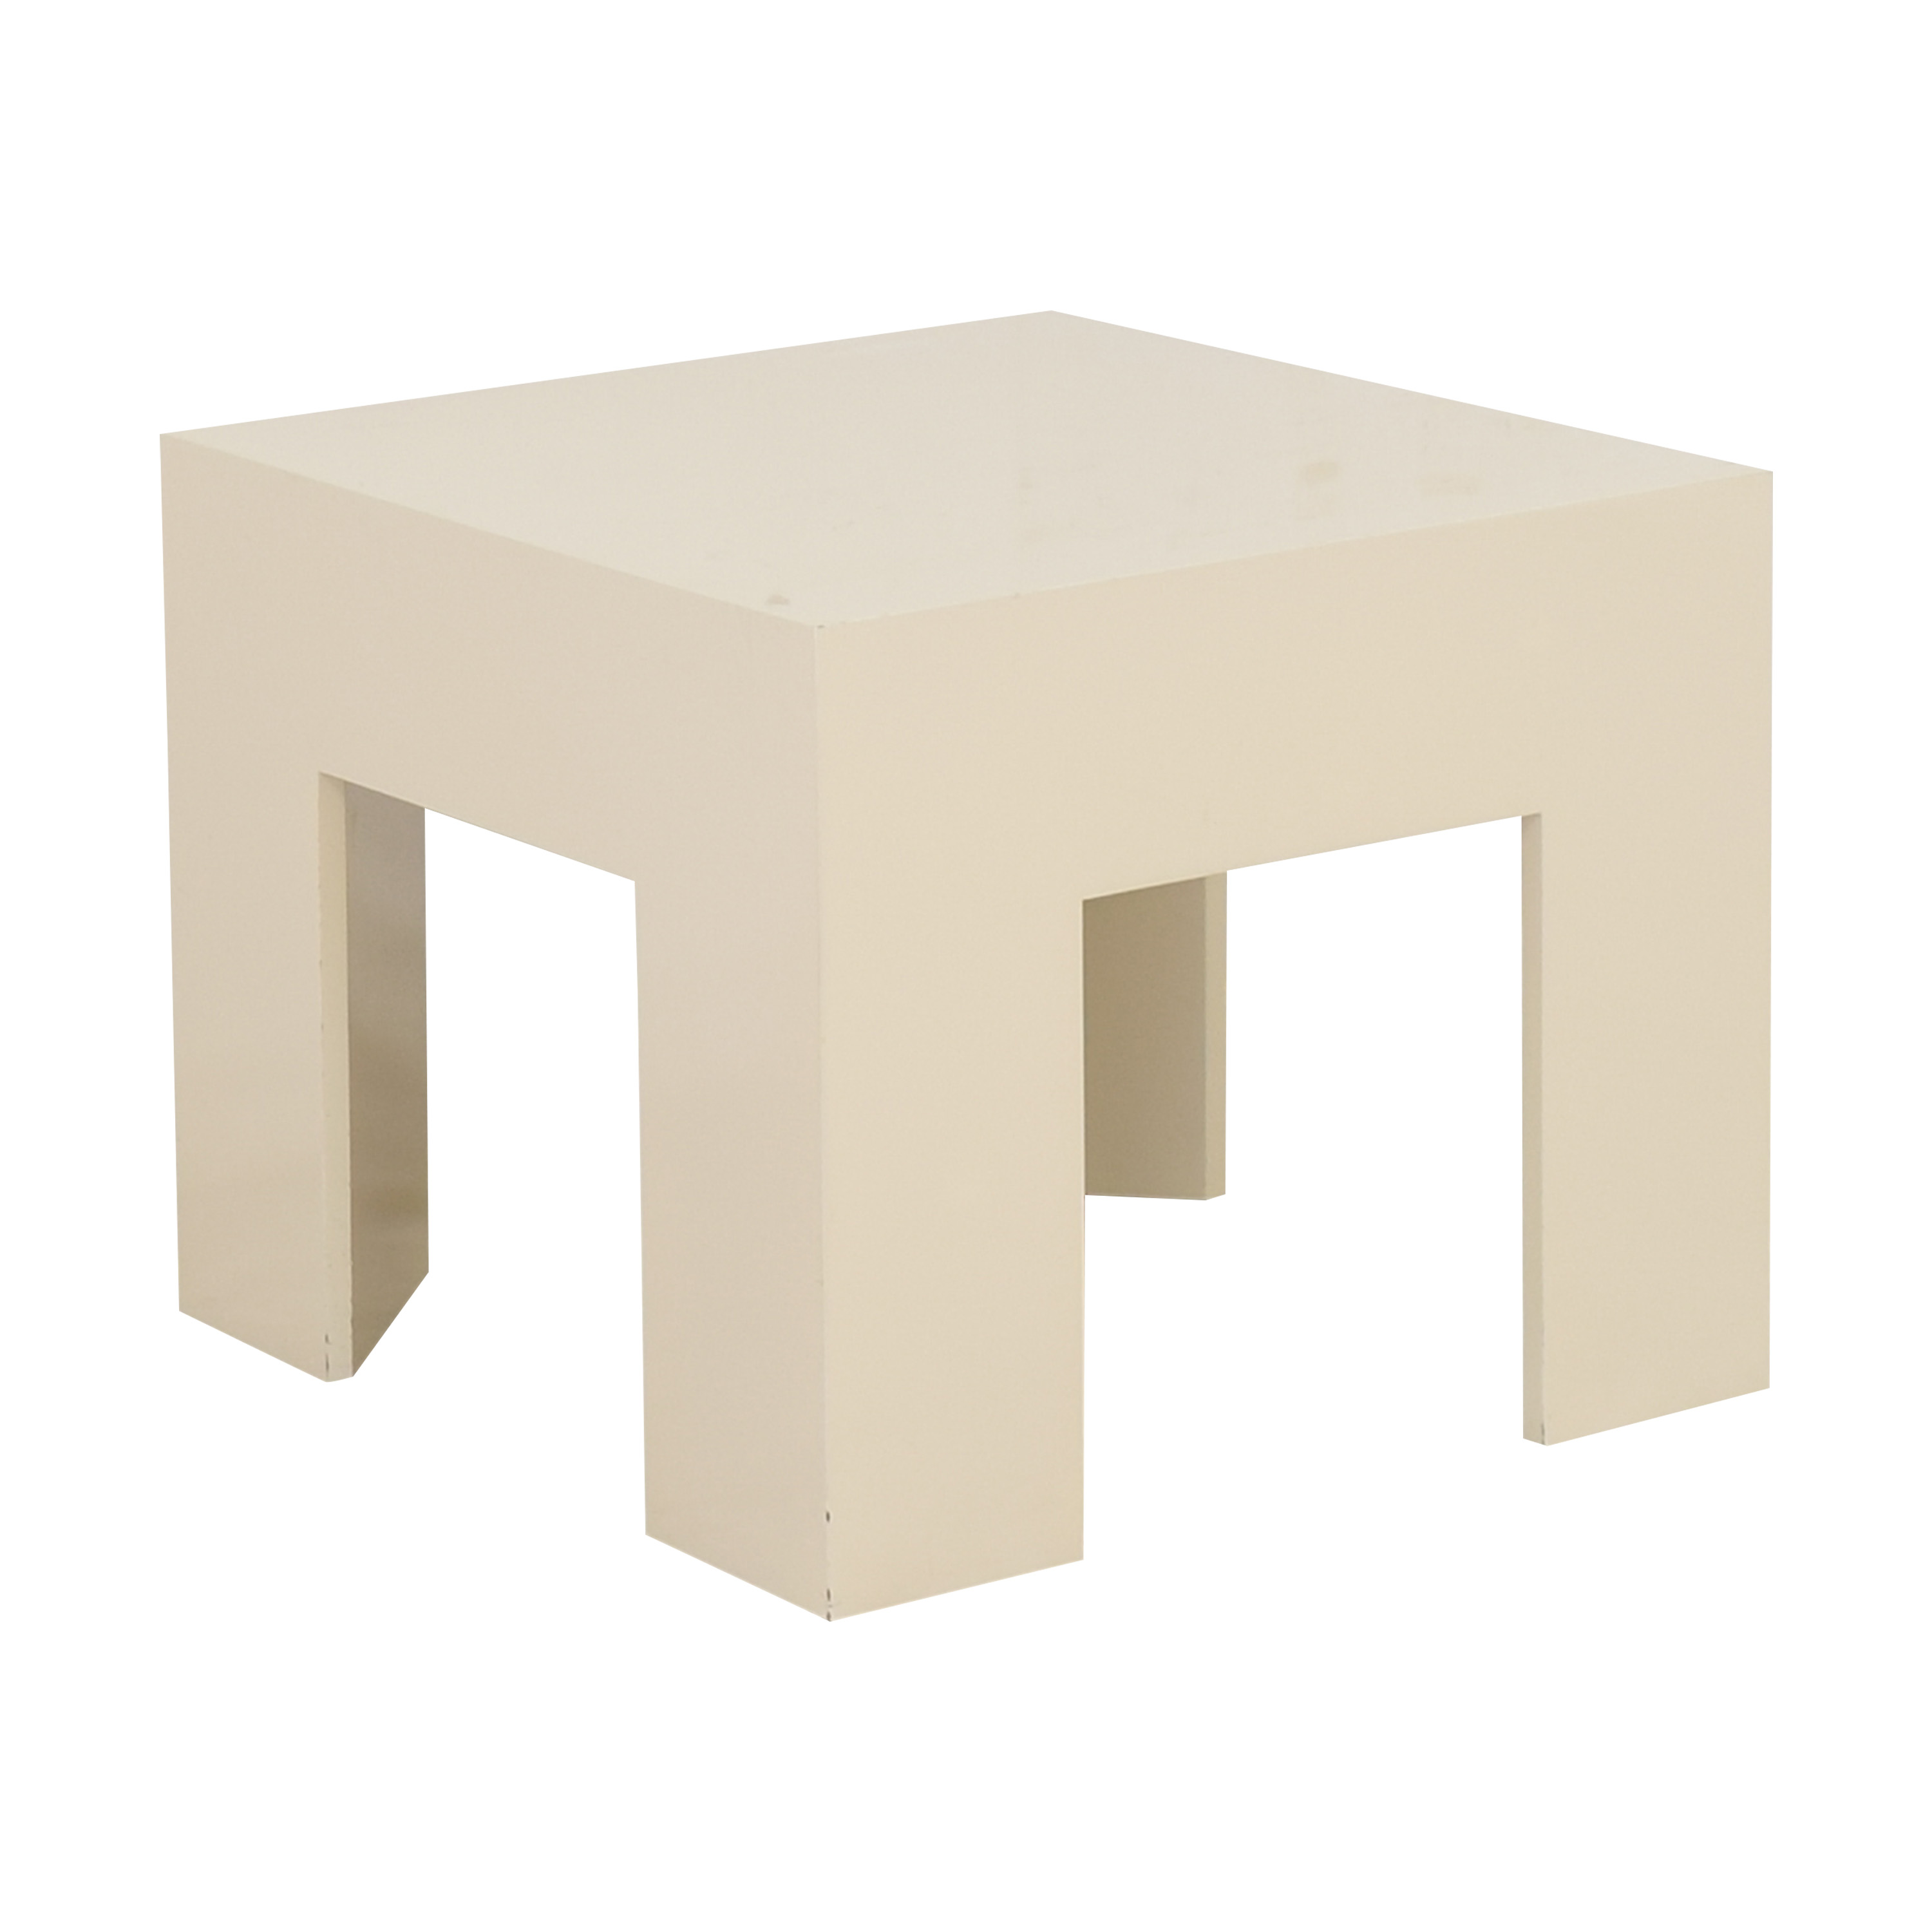 Square Accent Table second hand